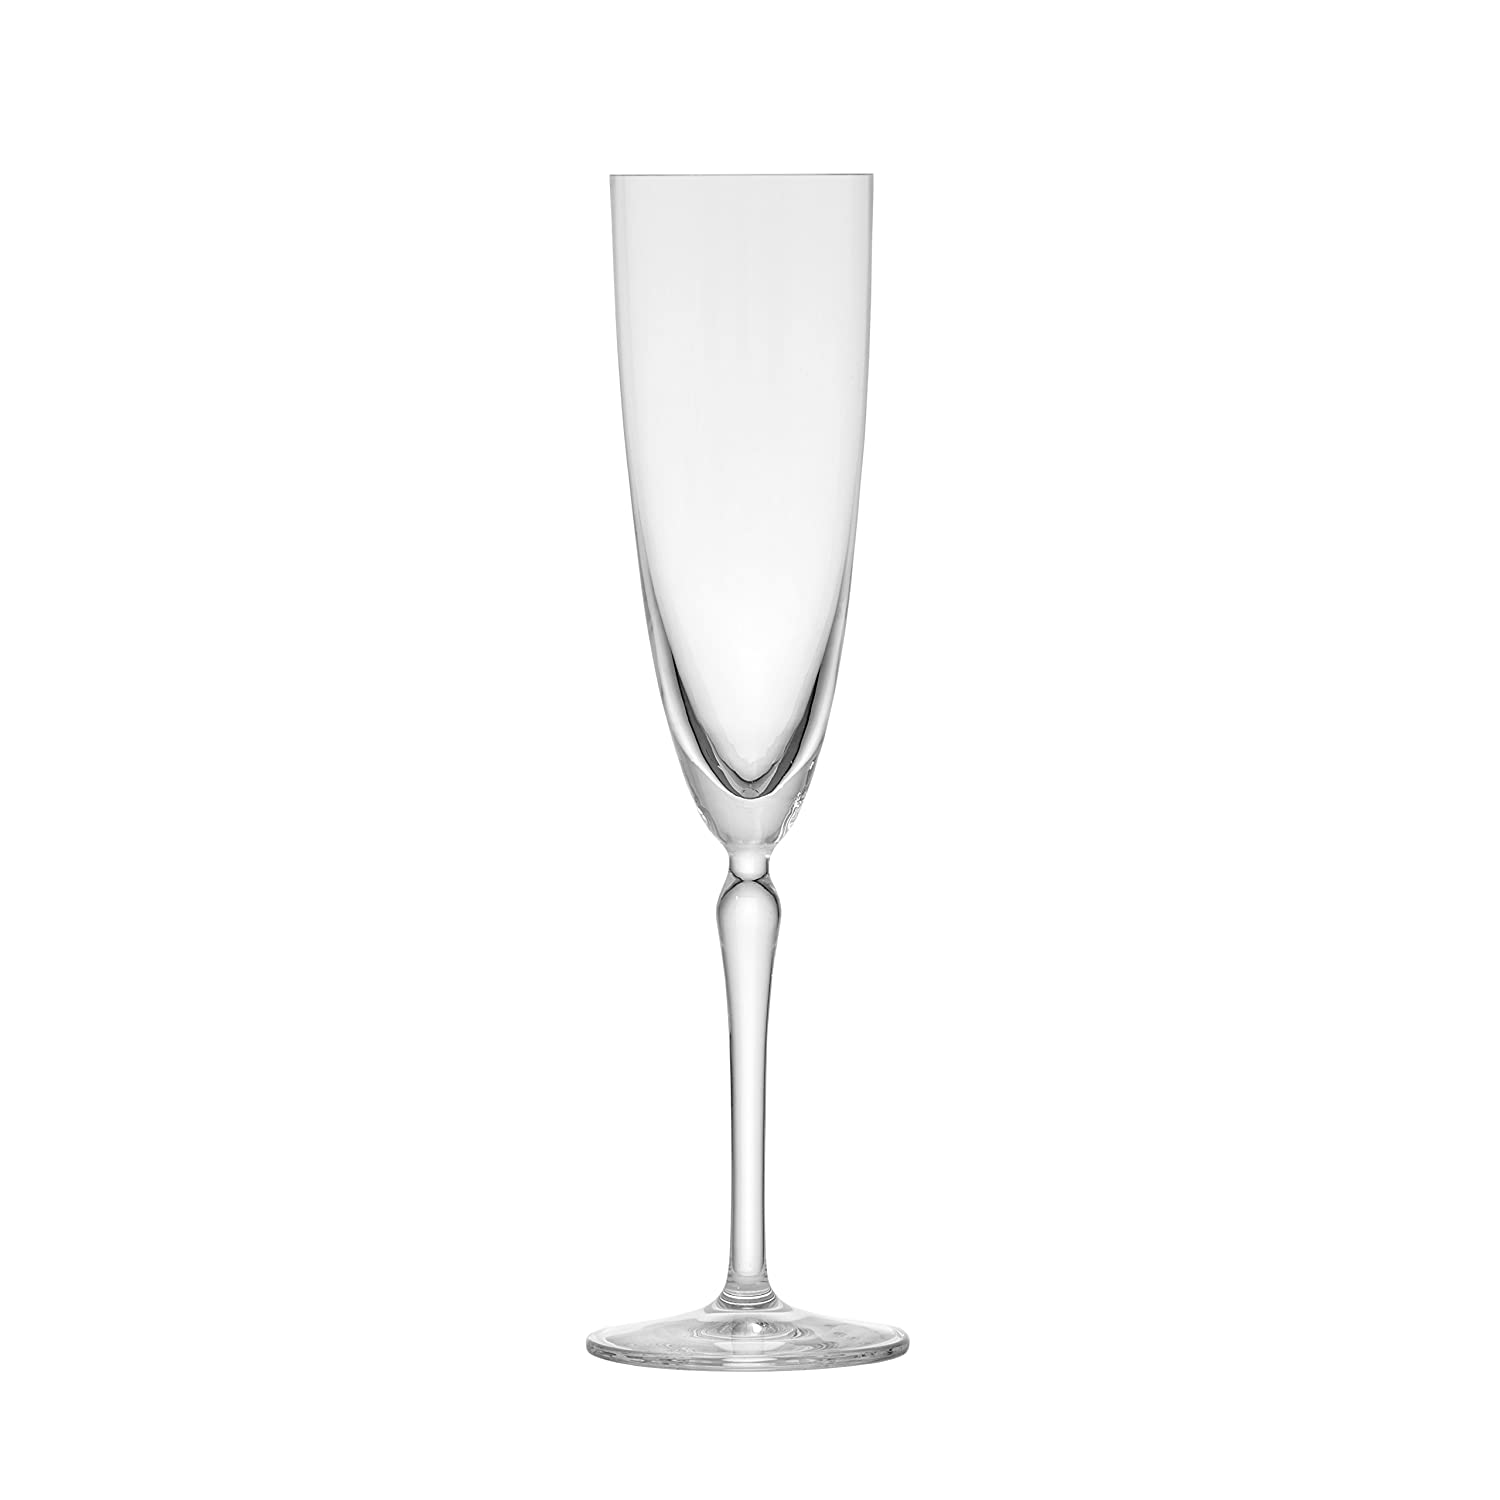 Schott Zwiesel Tritan Crystal Glass Audrey Stemware Champagne Flute with Effervescence Points, 7-Ounce, Set of 6 0075.120249